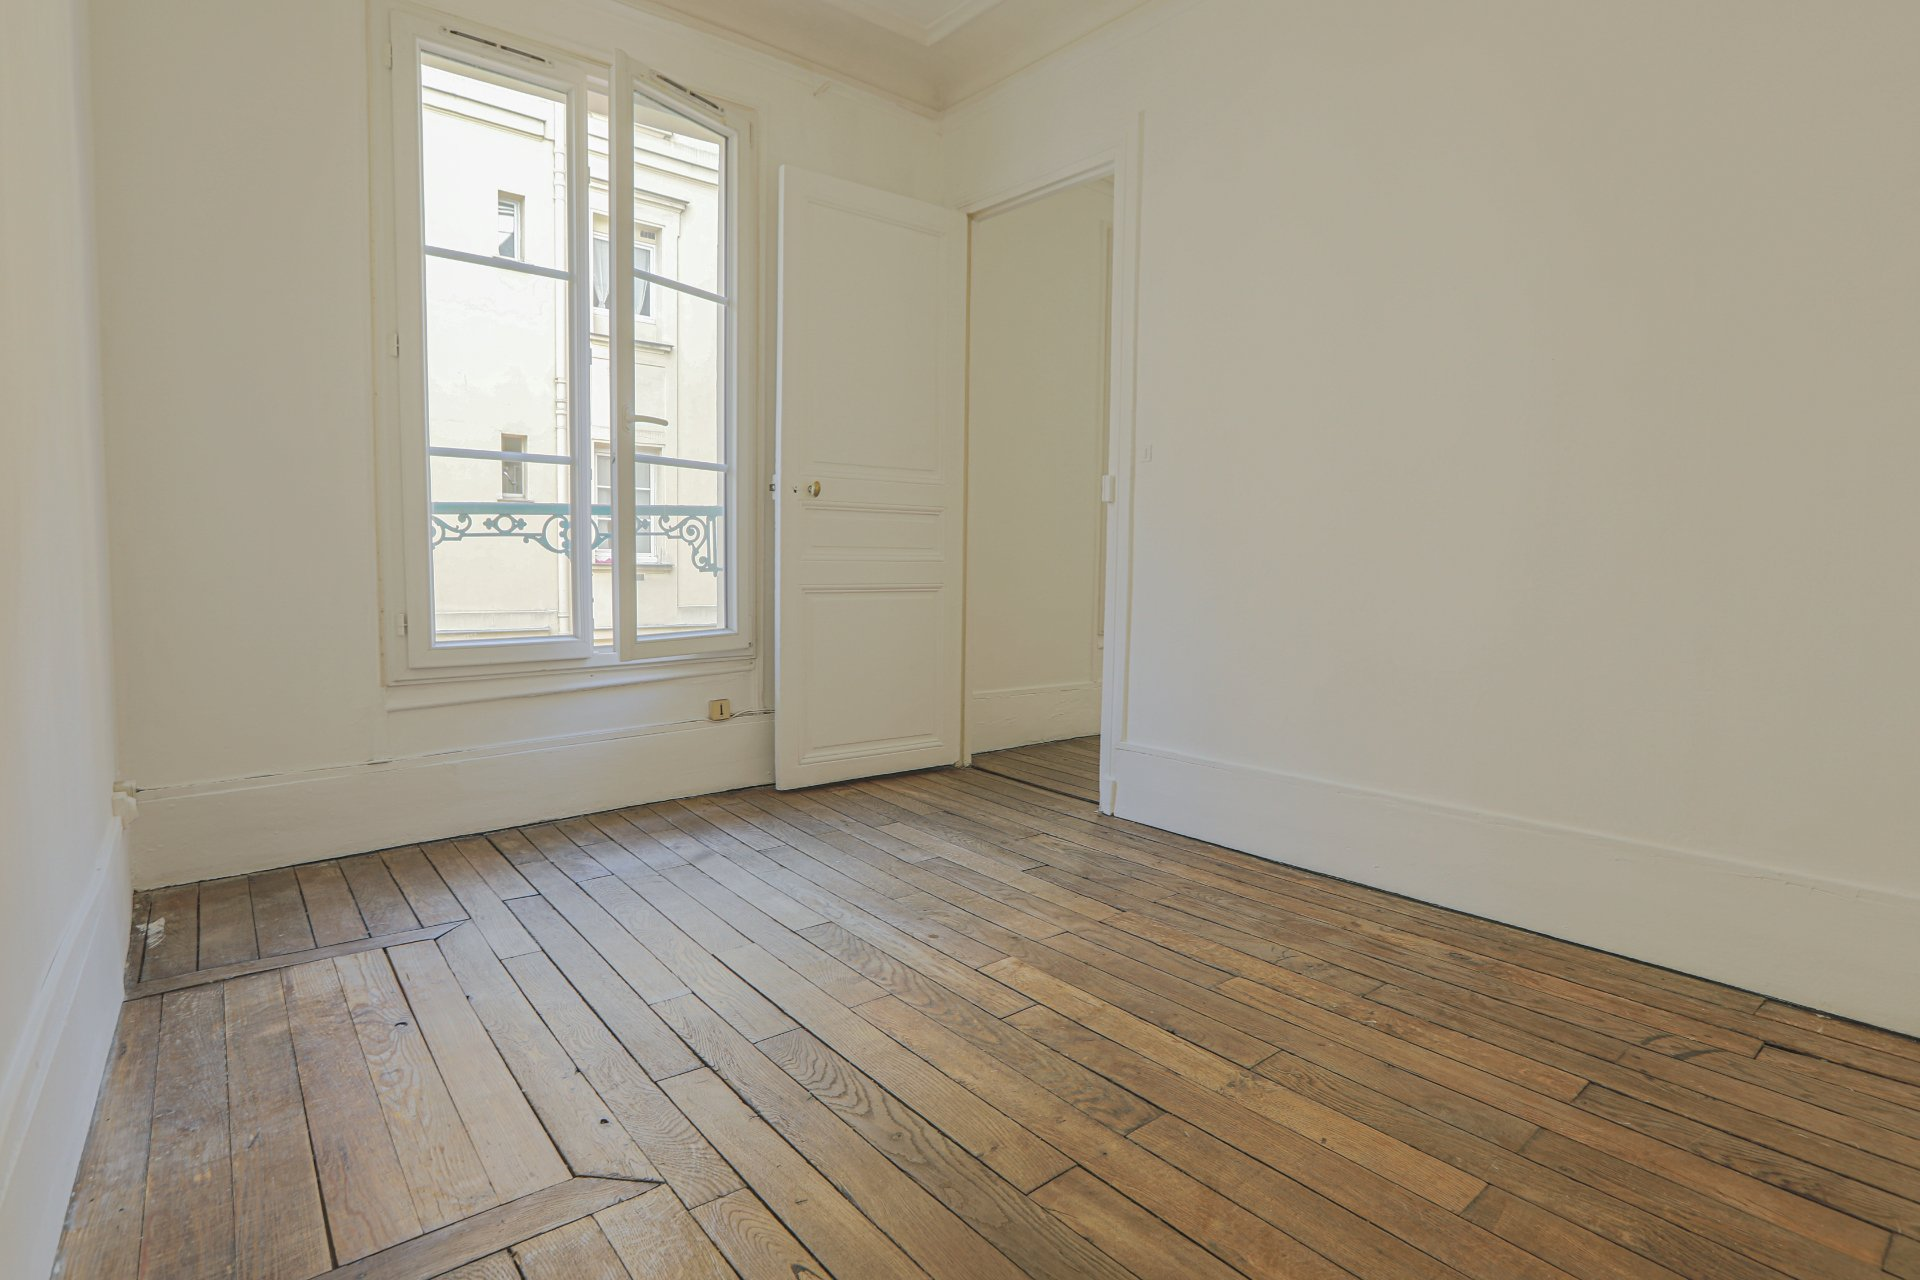 Paris 2 room apartment of 28m2 18th century Town Hall area 4